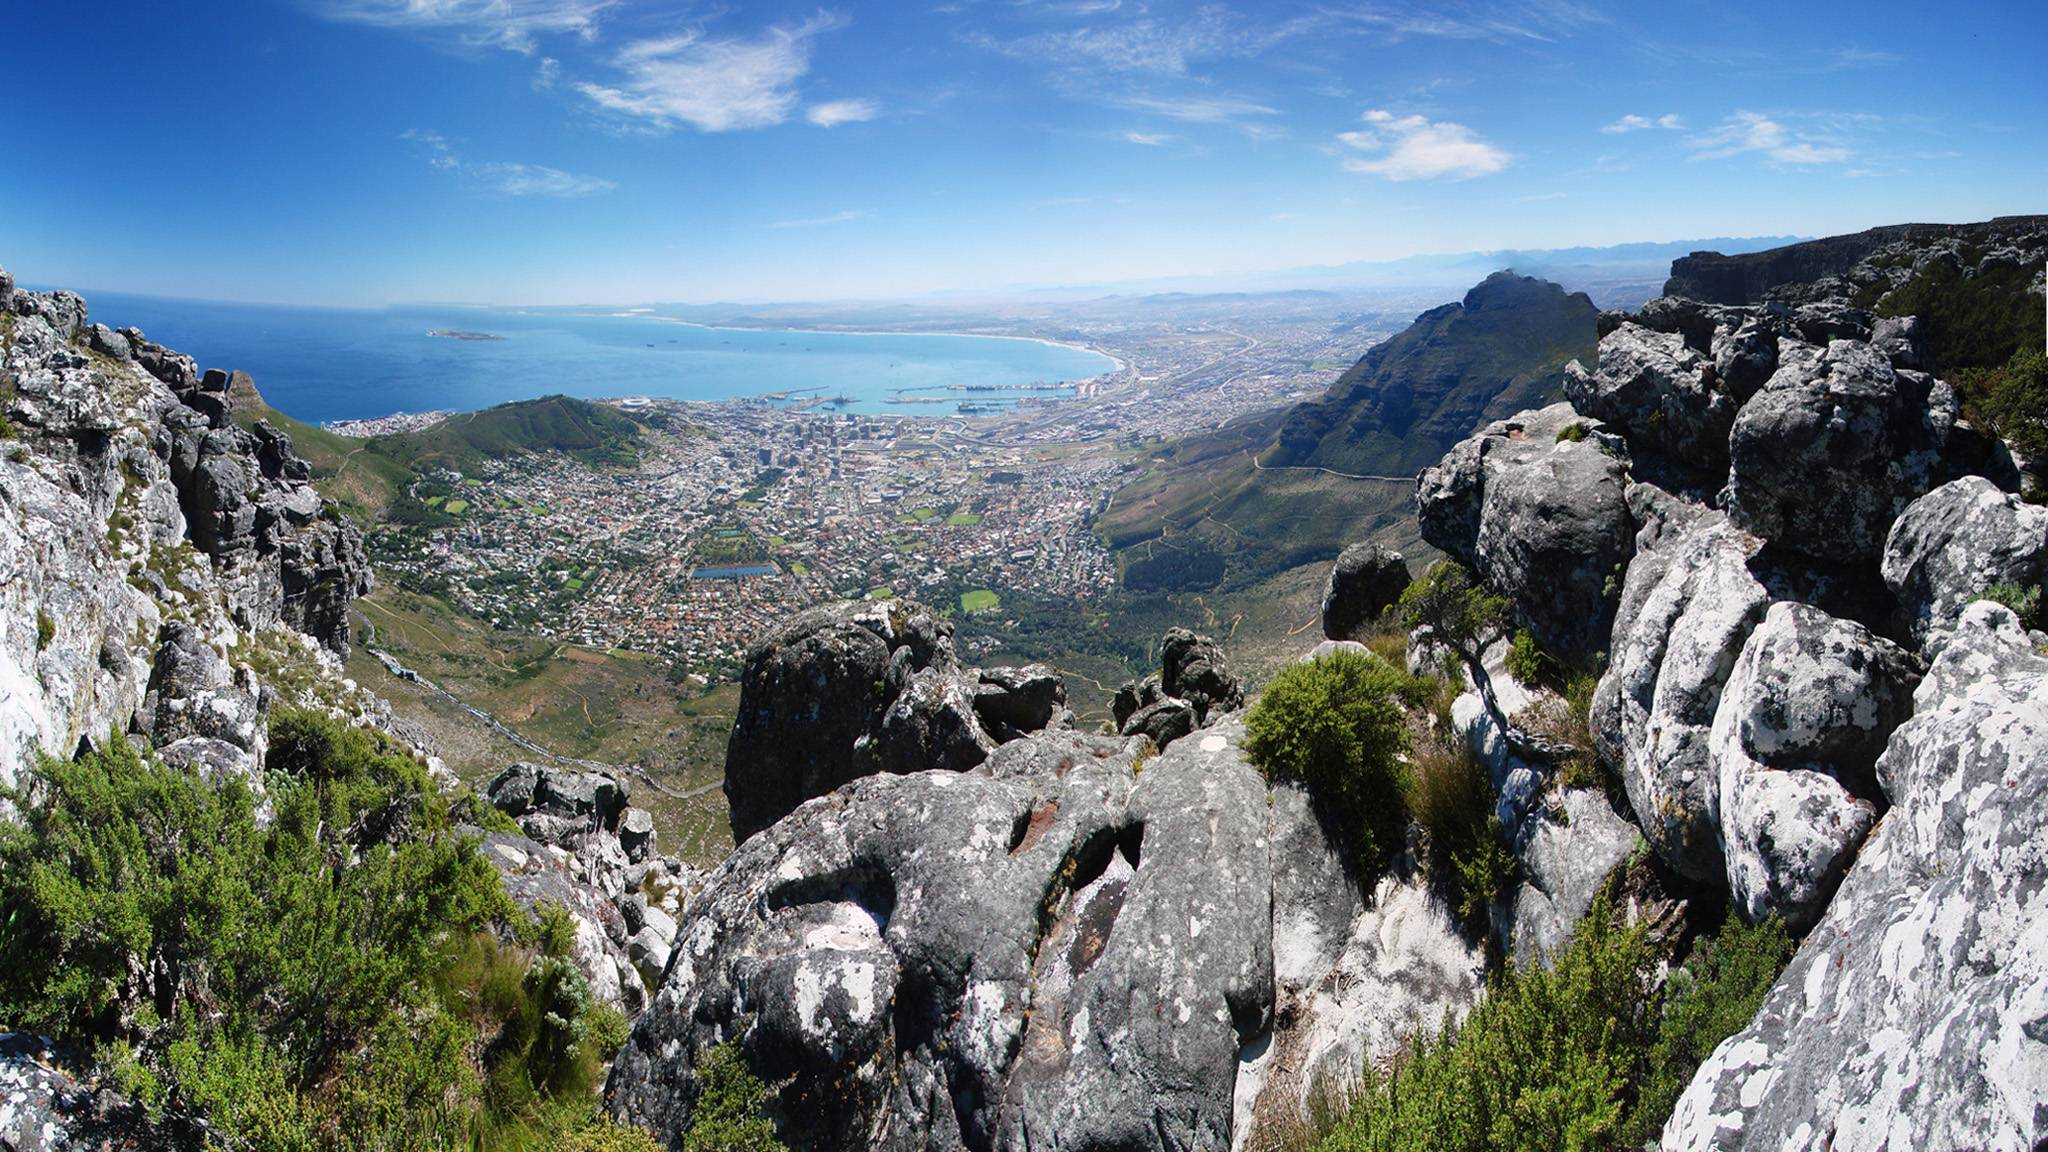 Cape Town Mountain View wallpaper